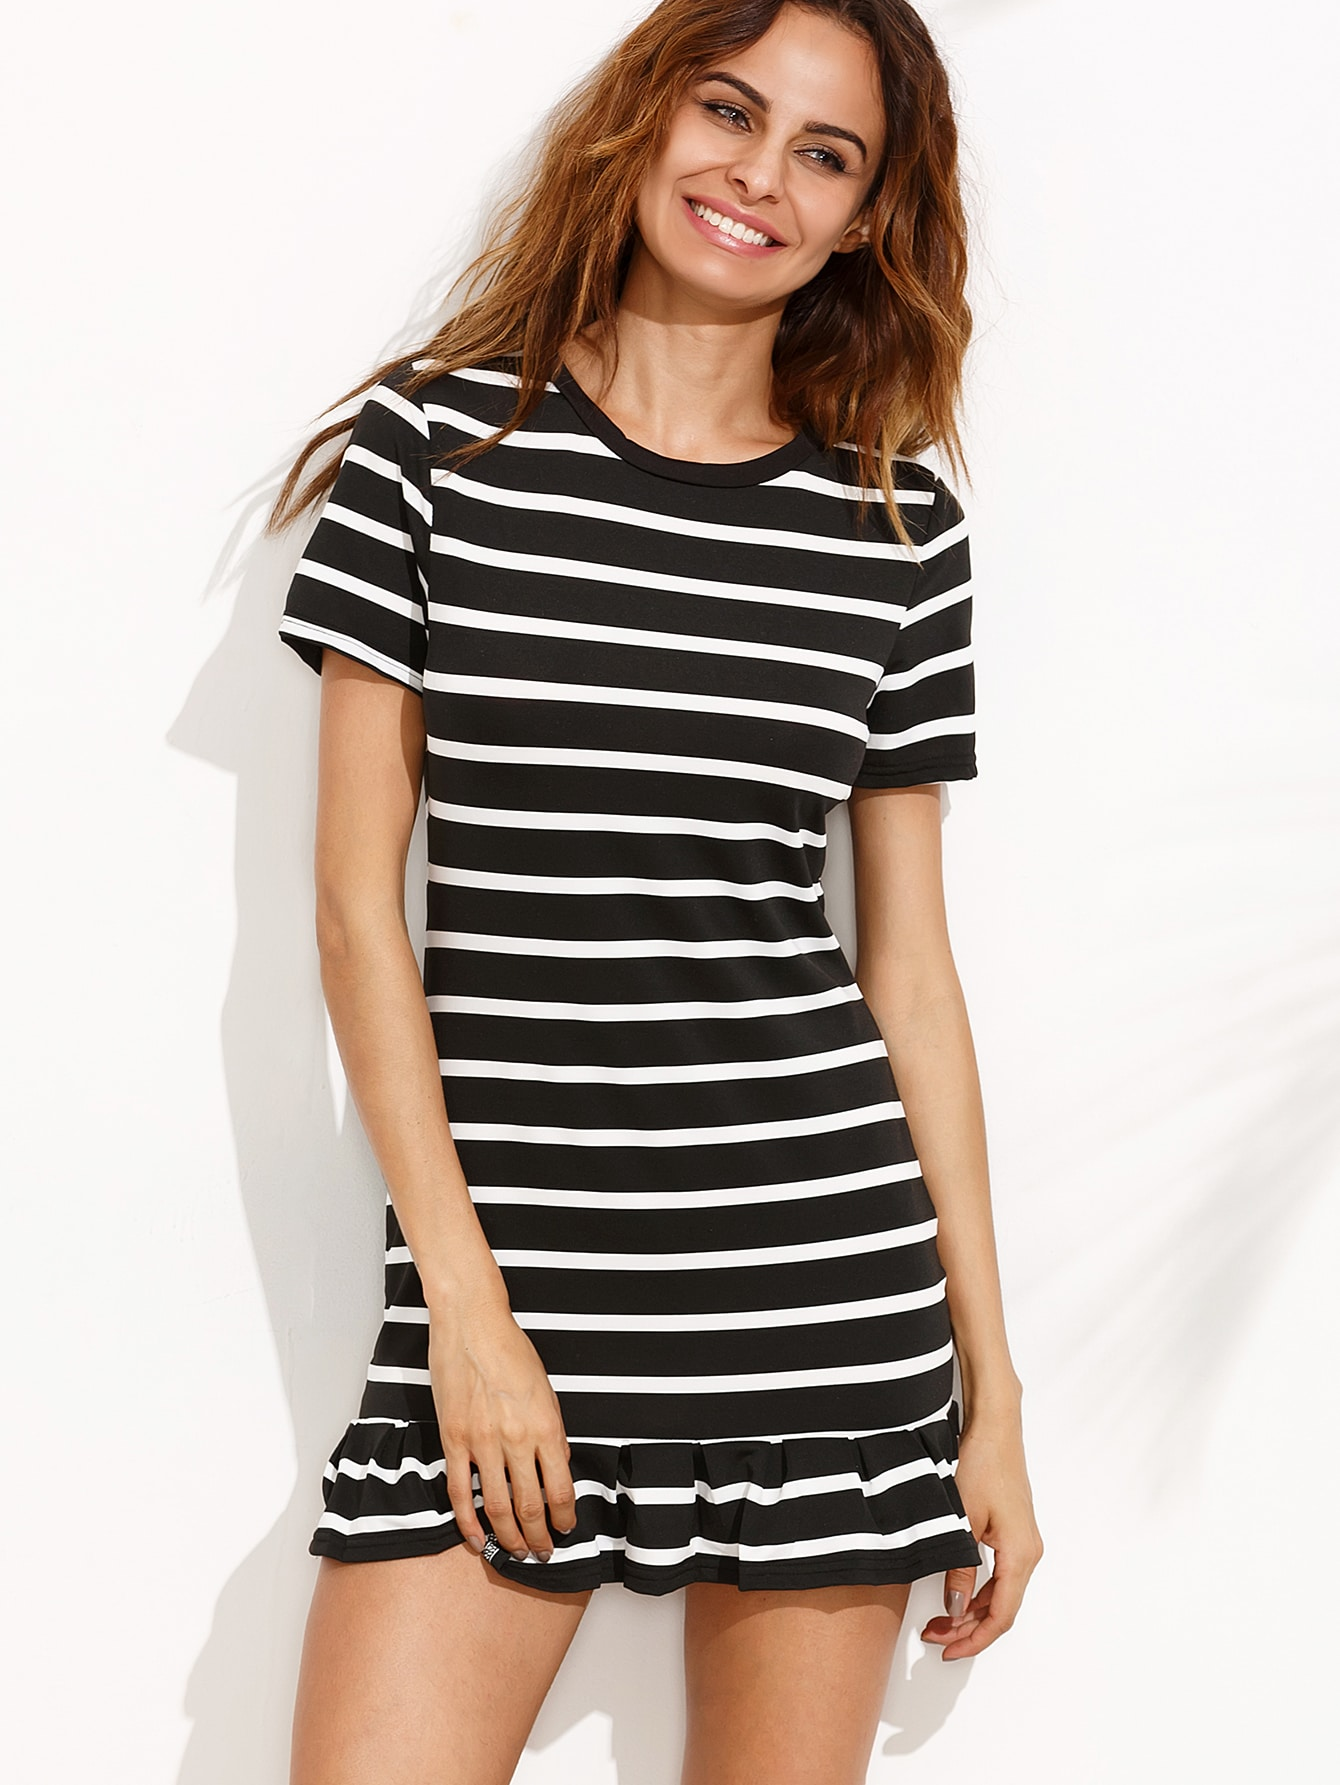 Black Striped Ruffle Hem Tee Dress dress160729306